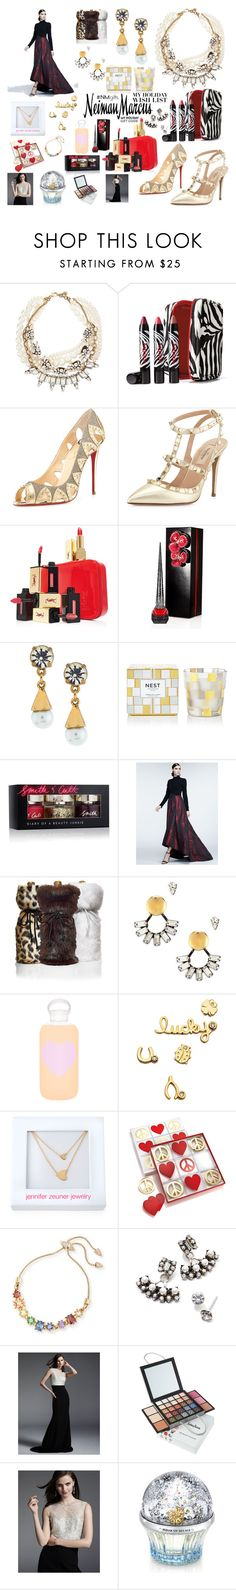 """The Holiday Wish List With Neiman Marcus: Contest Entry"" by loganslooks ❤ liked on Polyvore featuring Neiman Marcus, Lulu Frost, Sisley Paris, Christian Louboutin, Valentino, Yves Saint Laurent, Nest Fragrances, Smith & Cult, Theia and DANNIJO"